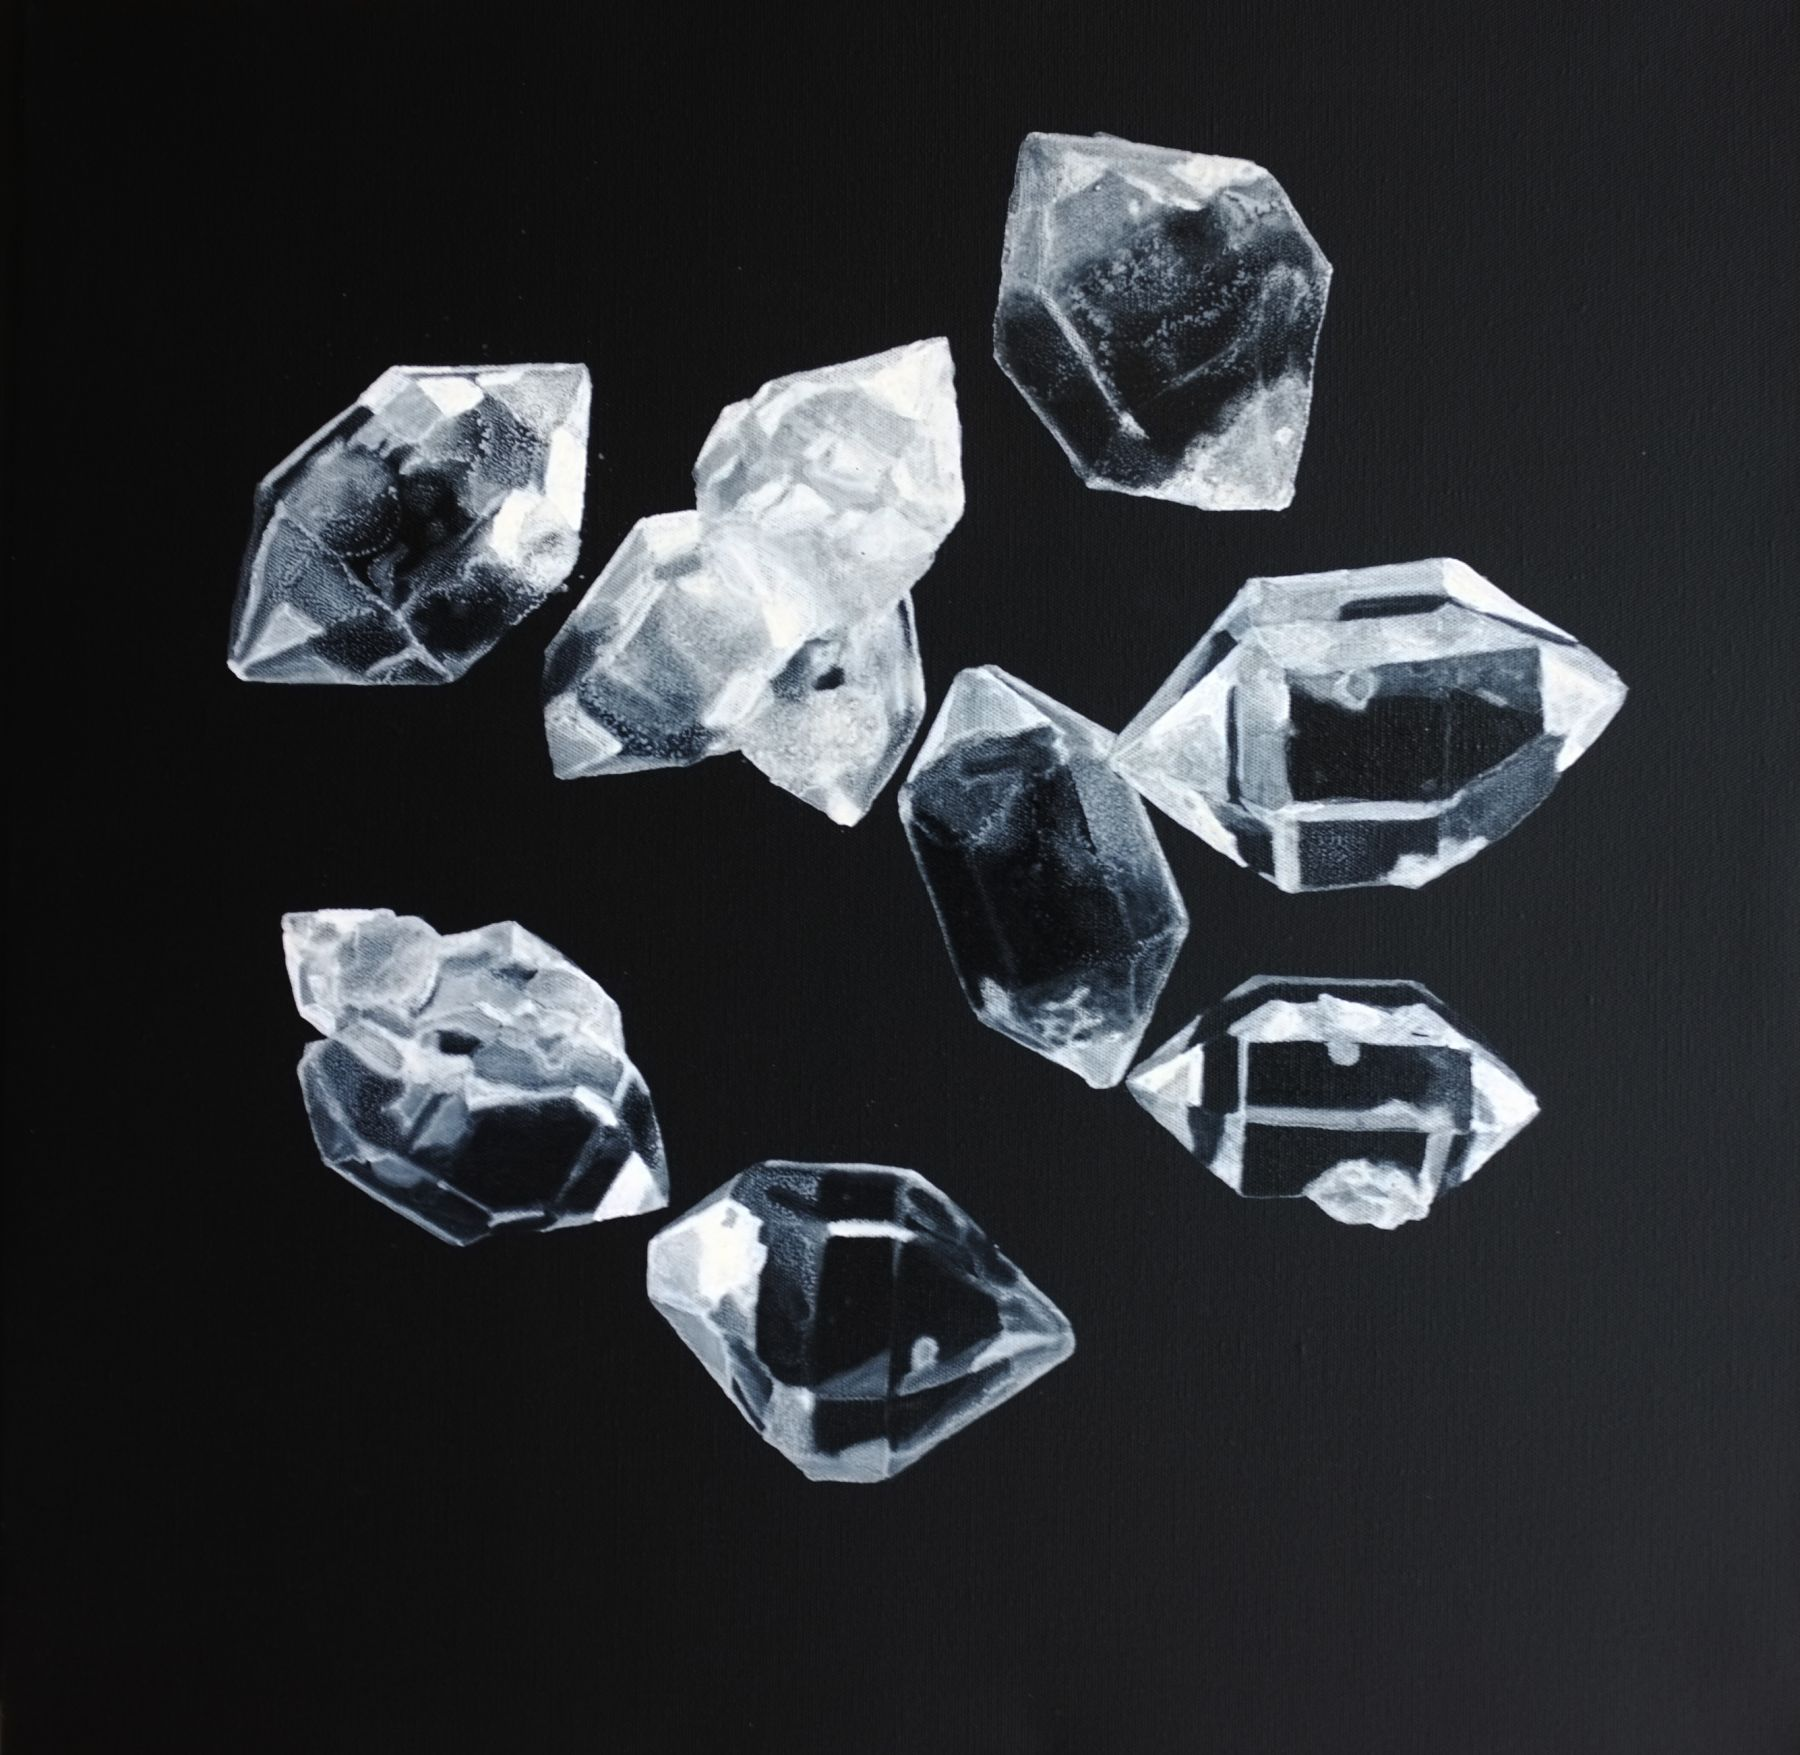 The Dark Side – Crystal No. 2 æš—面 – 水晶 2